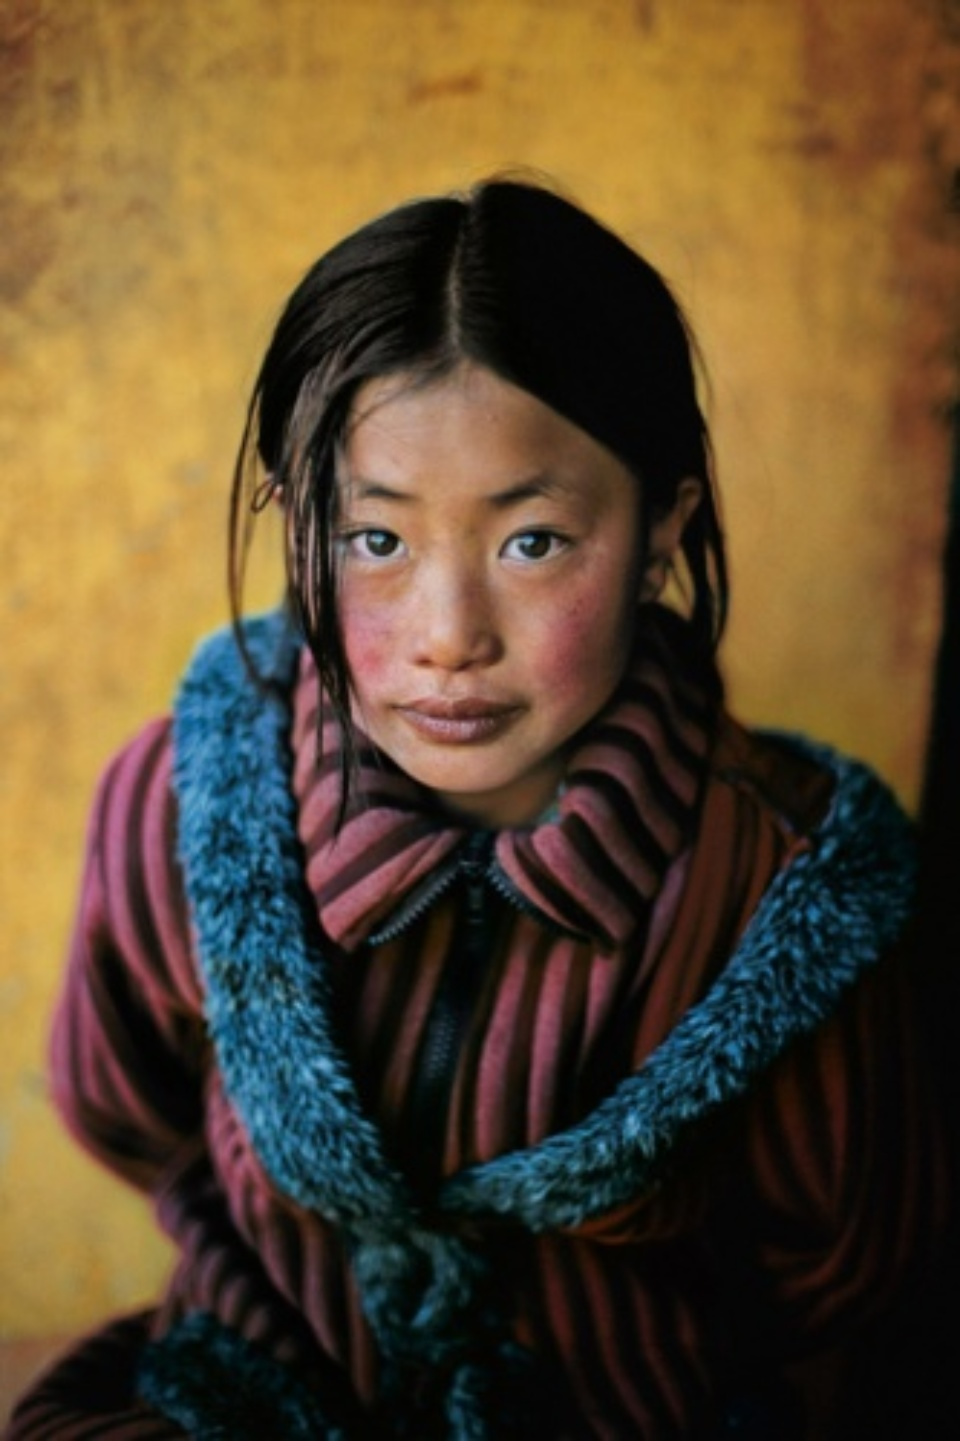 Steve McCurry: Tibetan Girl with New Coat Tibet, 2001 C-Print 50 x 60 cm // 76 x 101 cm // 101 x 152 cm Editioned